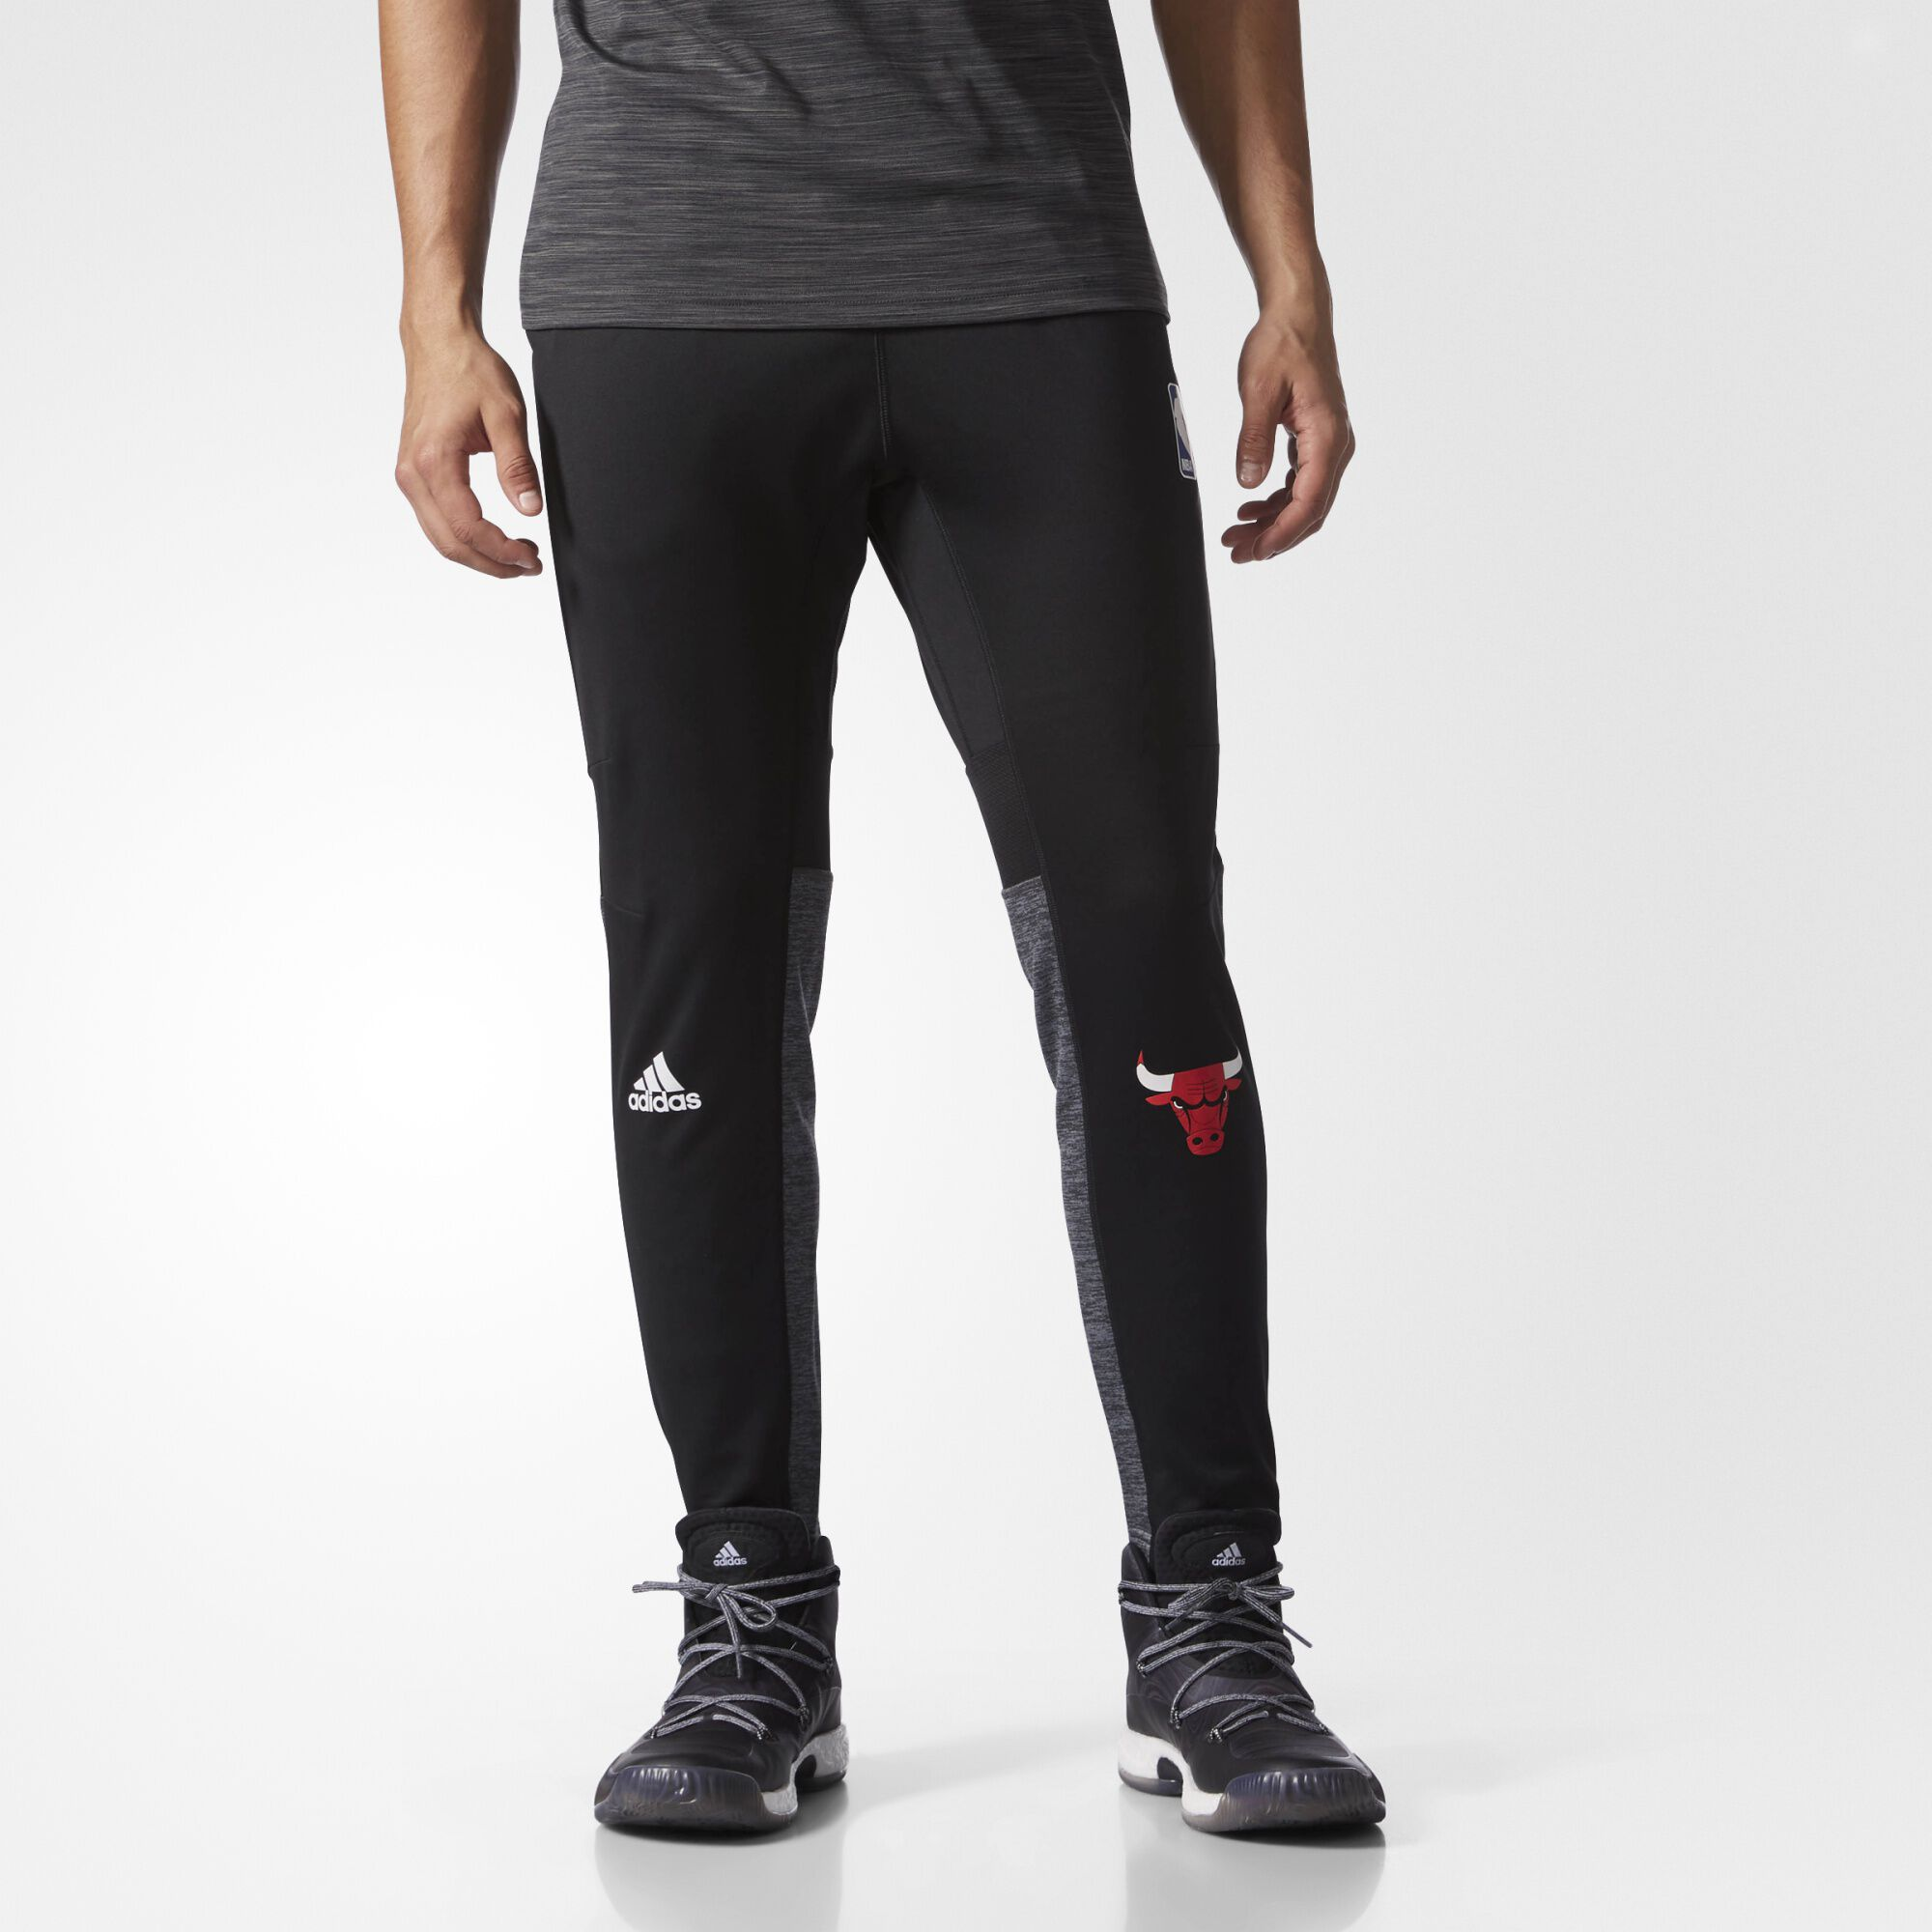 adidas basketball pants men